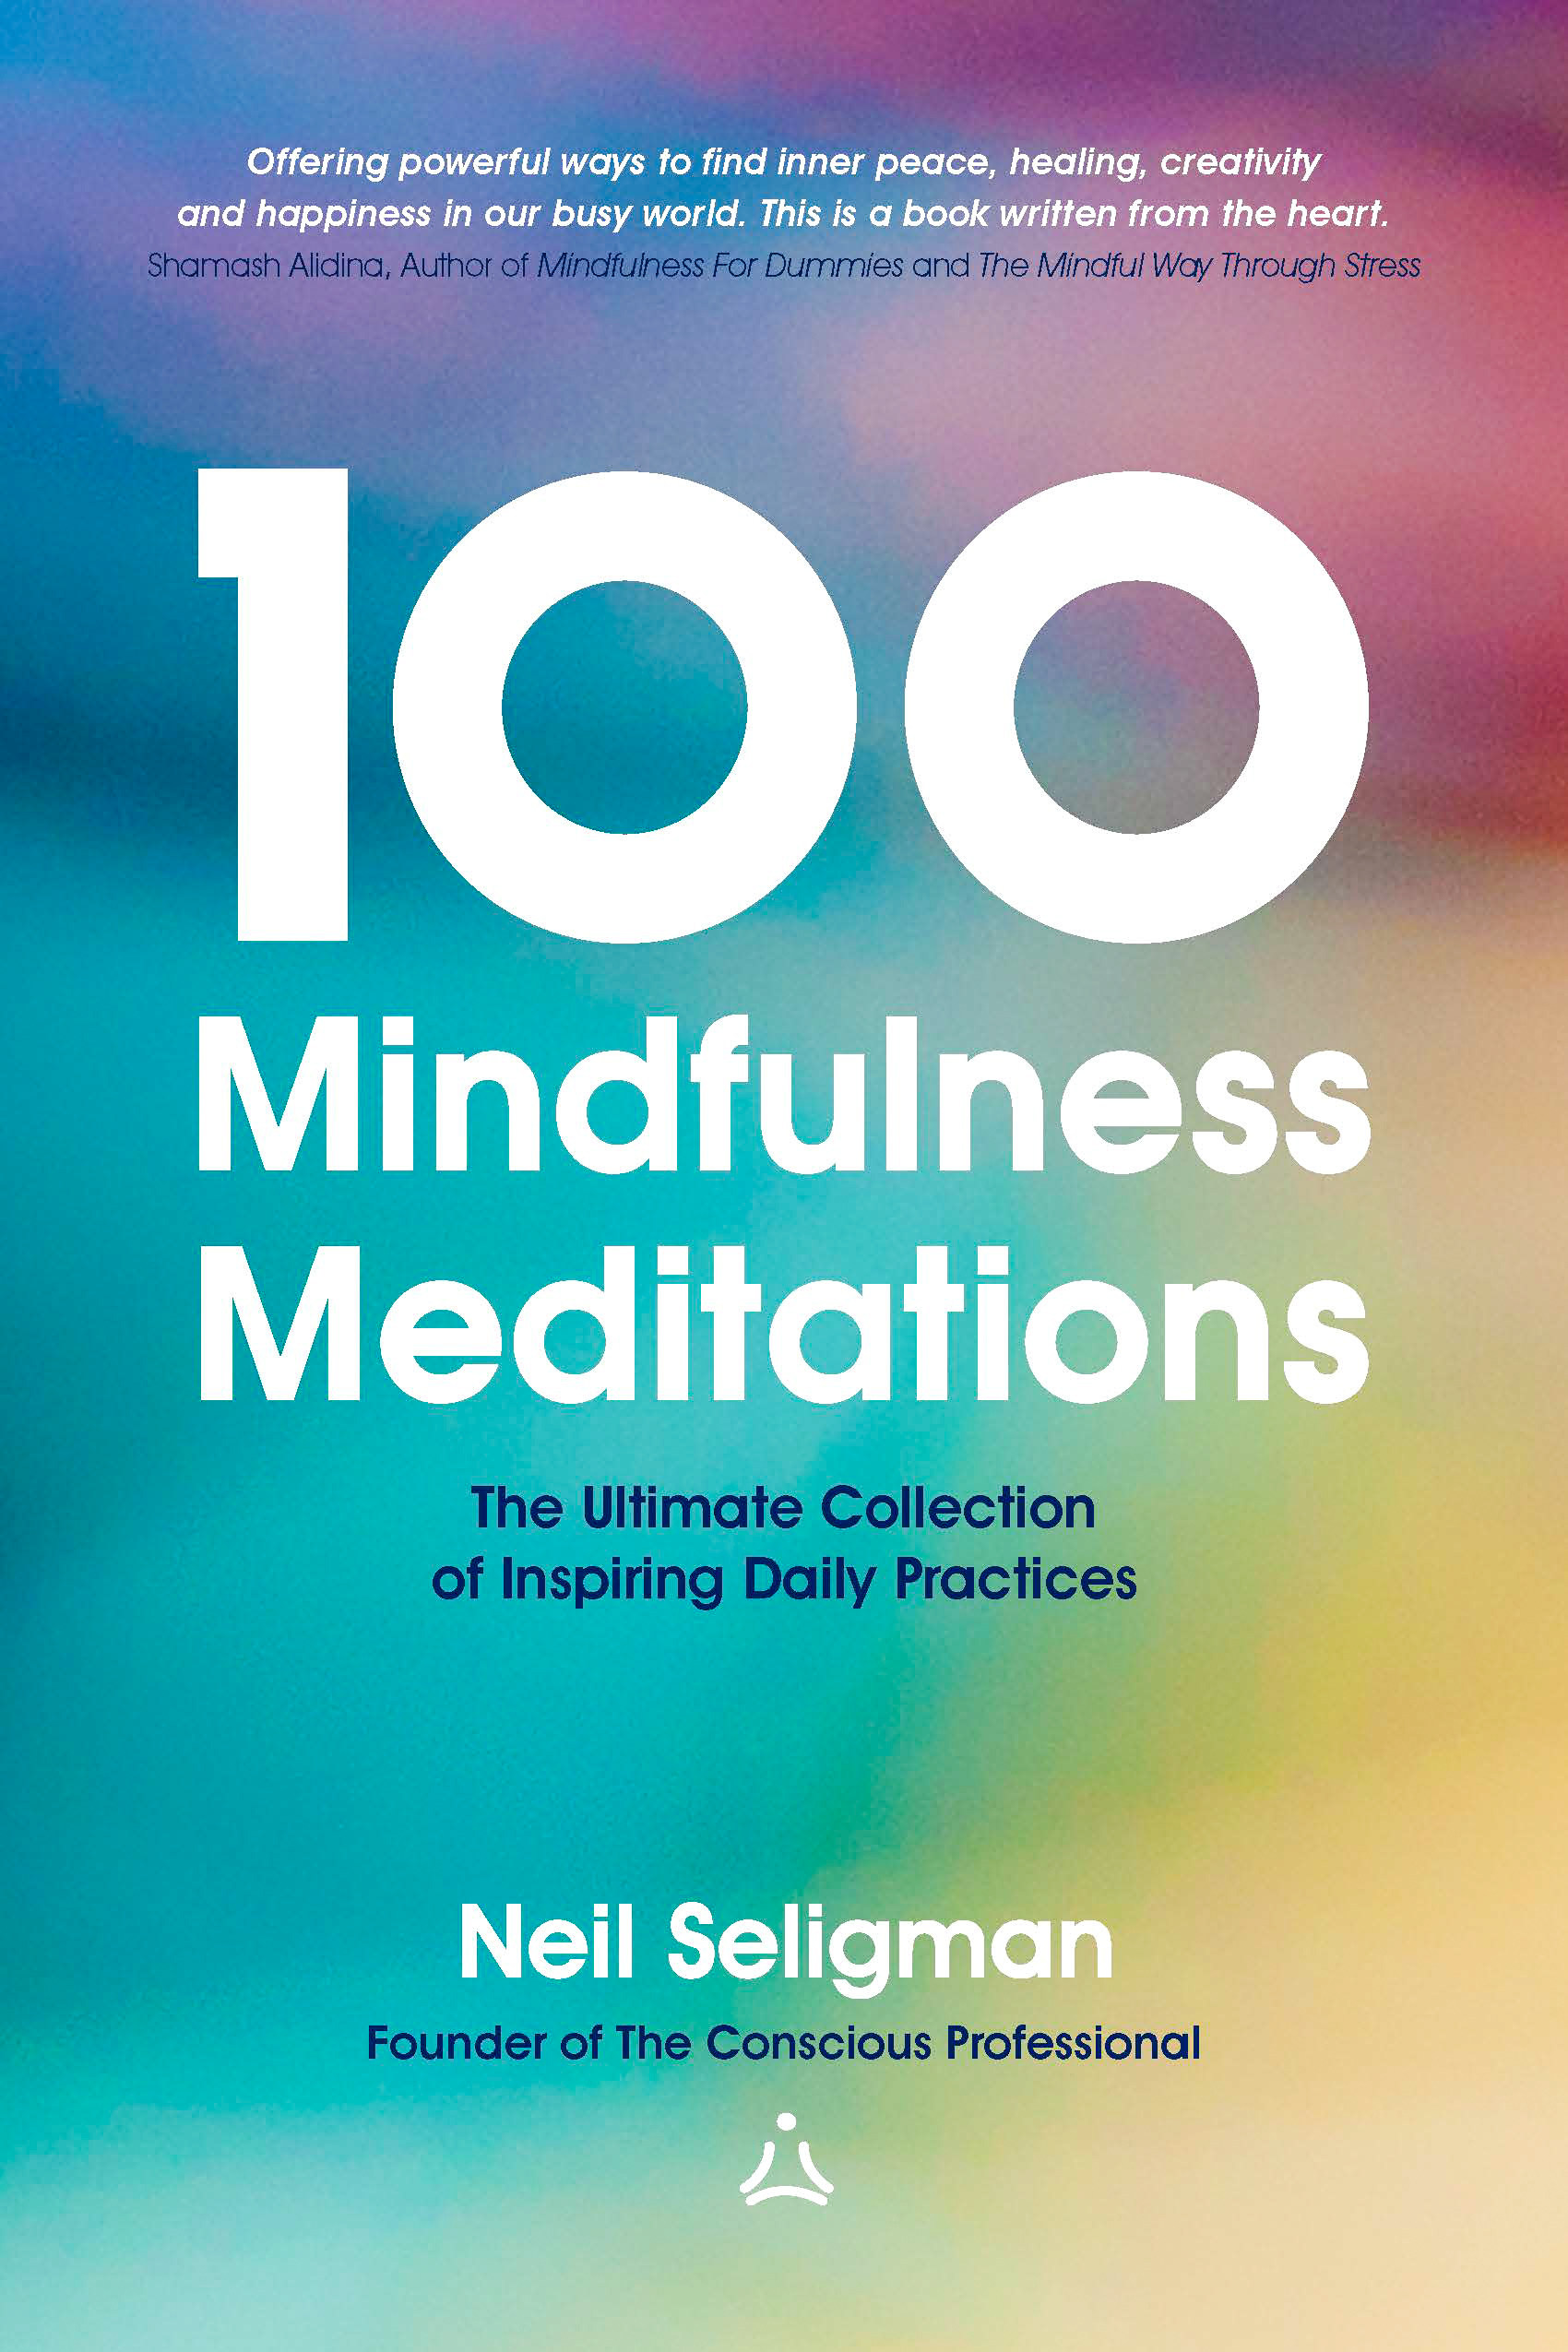 100 Mindfulness Meditations by Neil Seligman